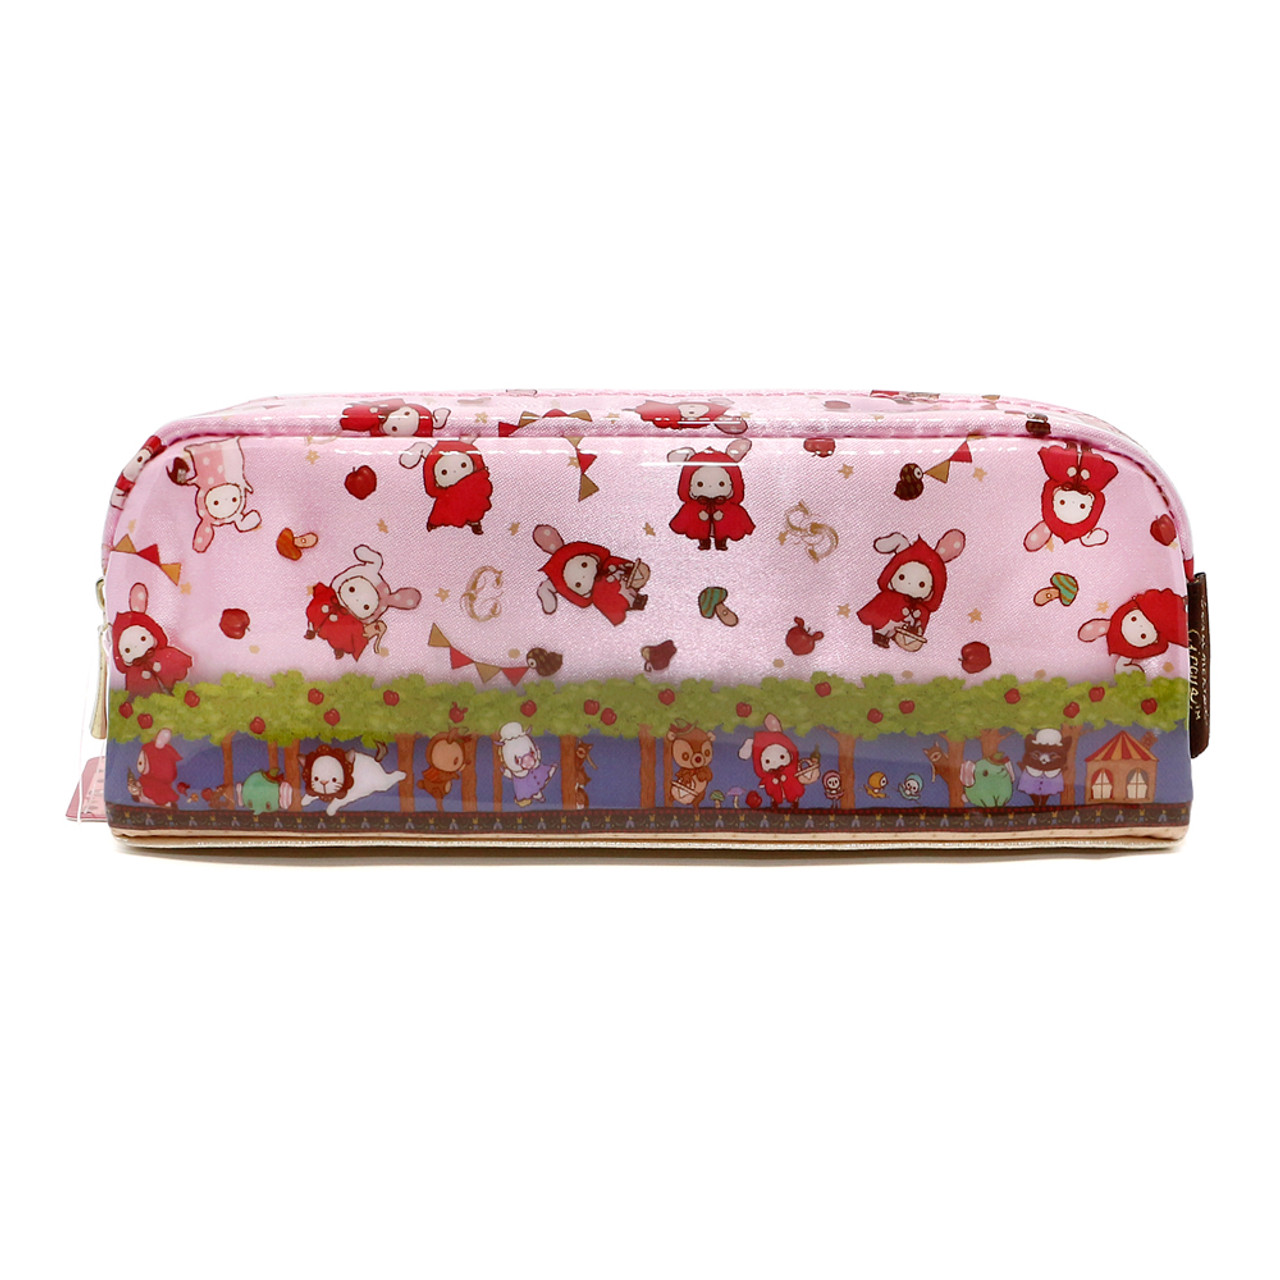 San-x Sentimental Circus Shappo Bunny Little Red Hood In Garden Pencil Case ( Back View )